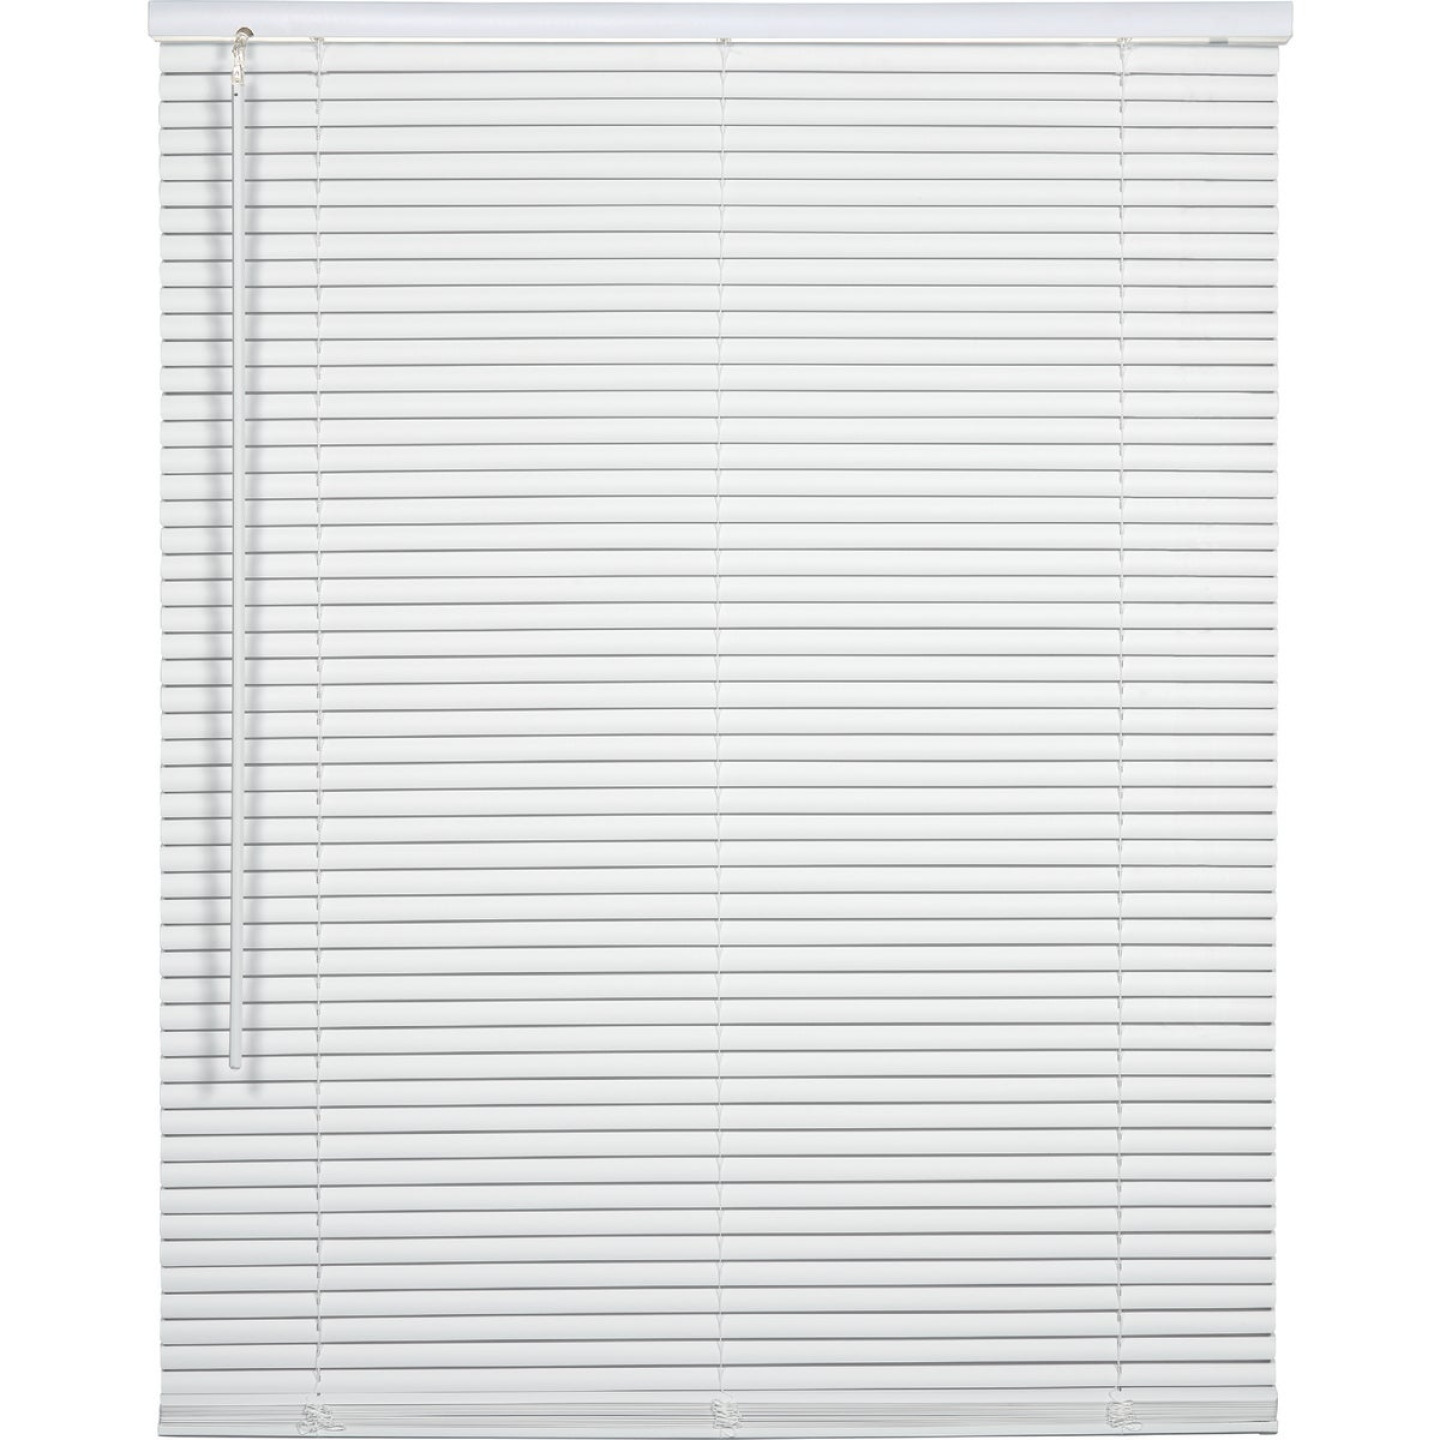 Home Impressions 19 In. x 64 In. x 1 In. White Vinyl Light Filtering Cordless Mini Blind Image 1